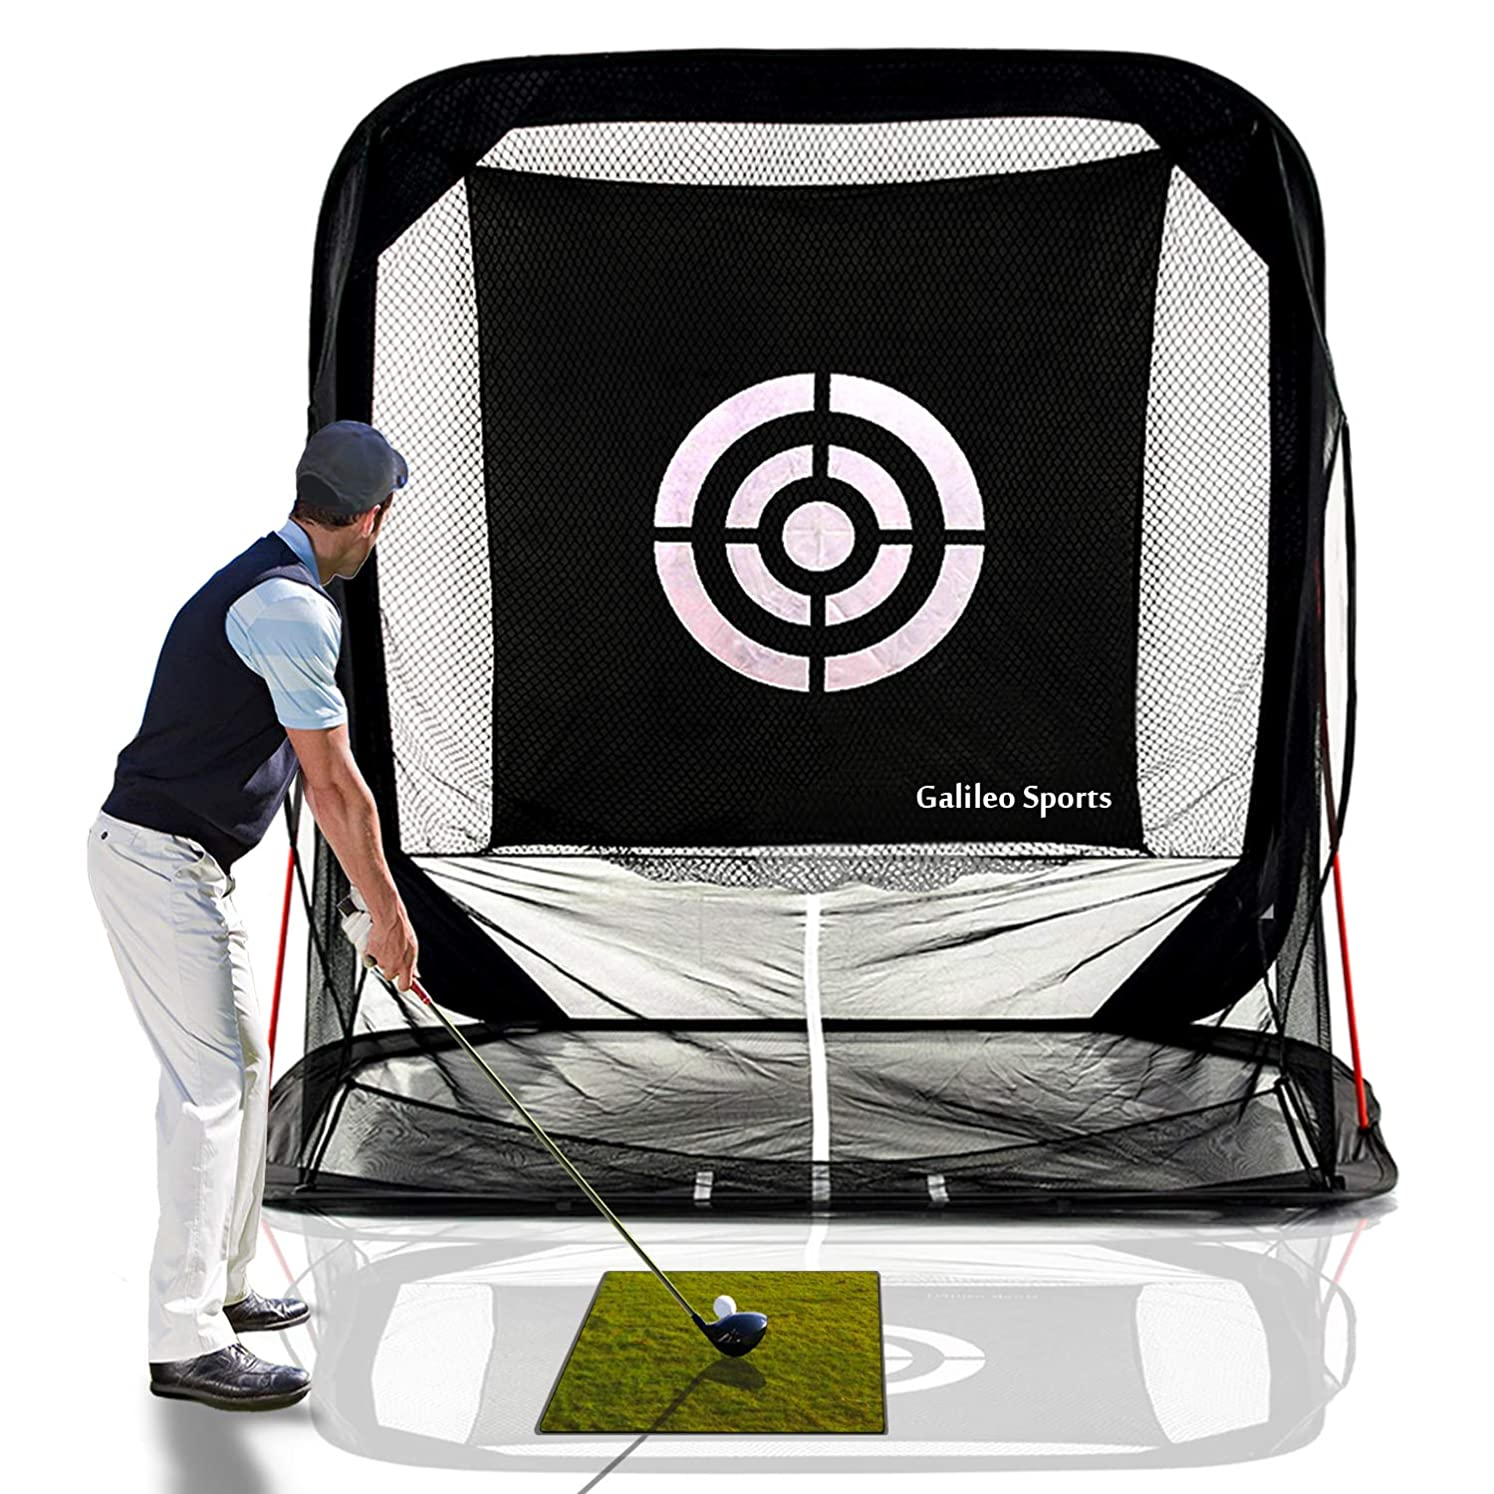 Galileo Golf Nets Golf Hitting Net Training Aid Driving Pop Up Automatic Ball Return for Backyard Driving with Target&Carry Bag vfpdzqvpi8606814